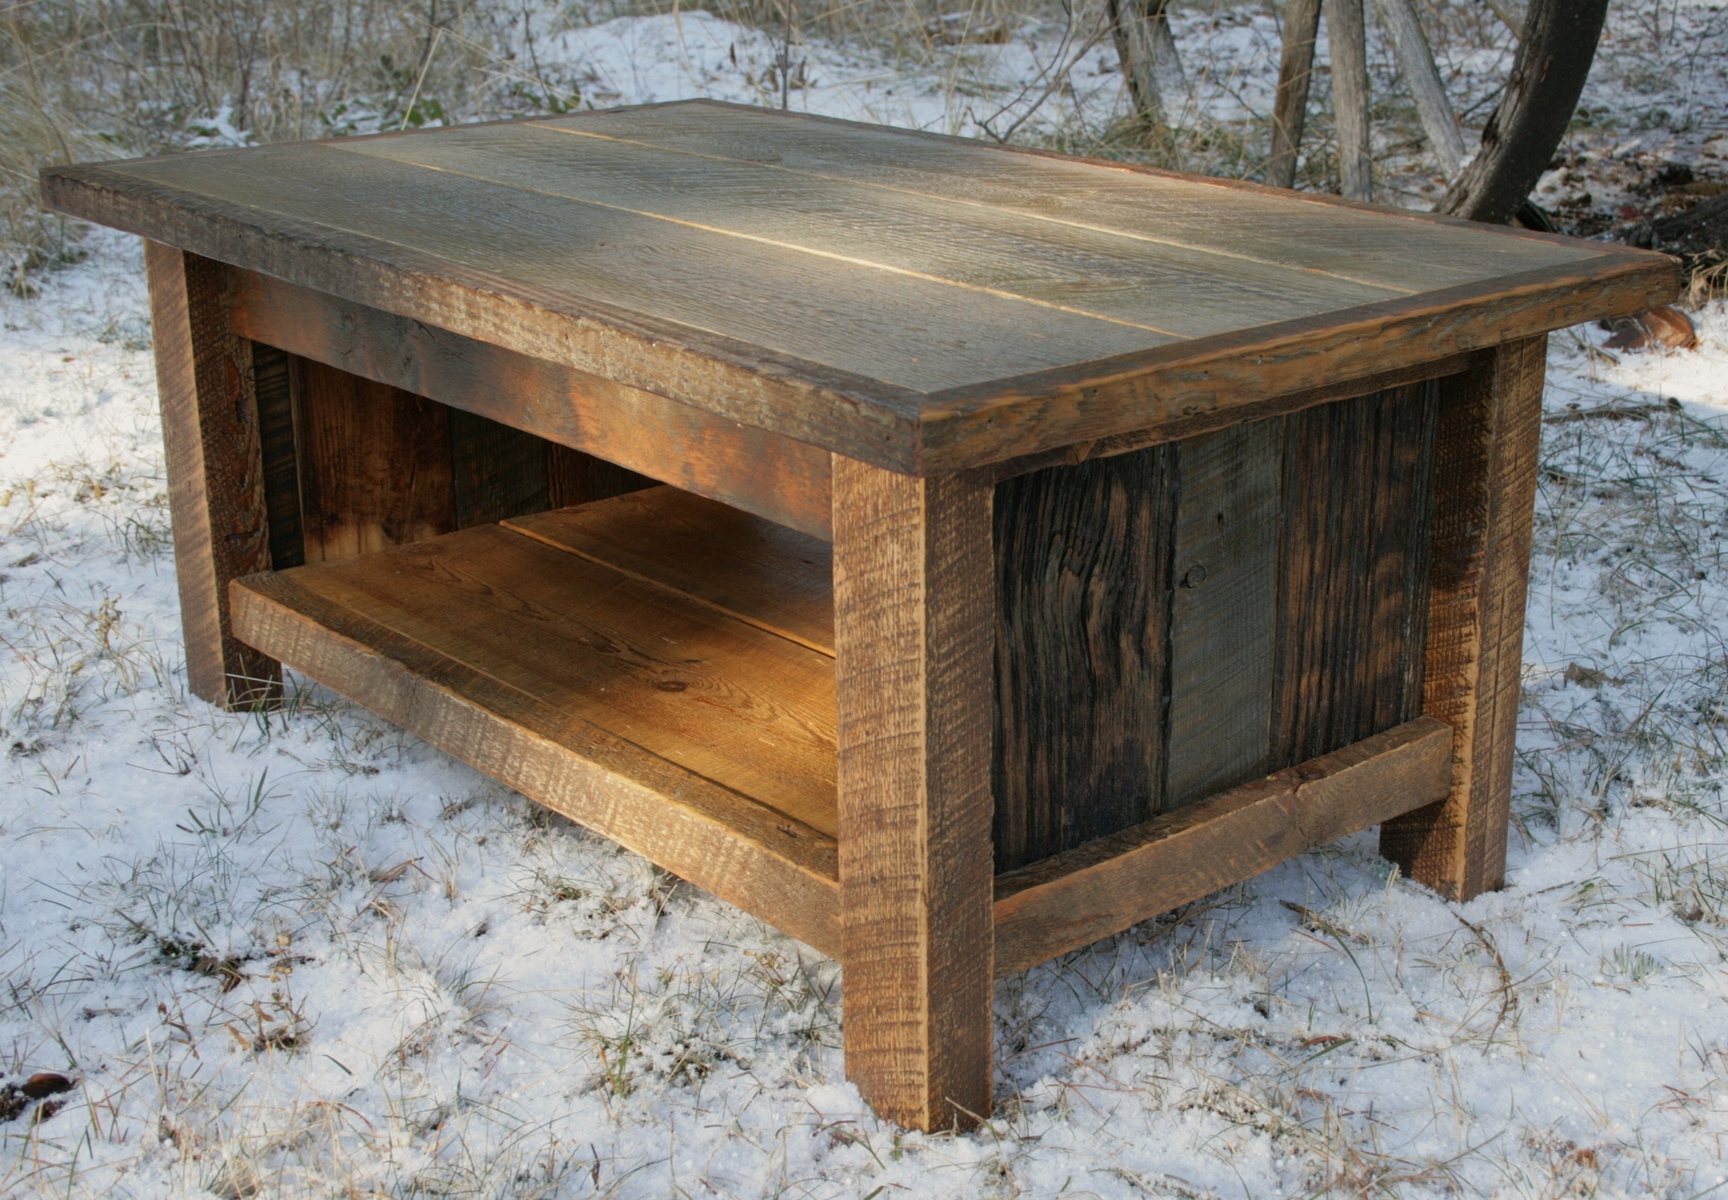 astonishing reclaimed wood coffee table rustic sets solid outdoor furniture rectangle walnut beveled top well light oak end with drawer threshold mirrored accent living room